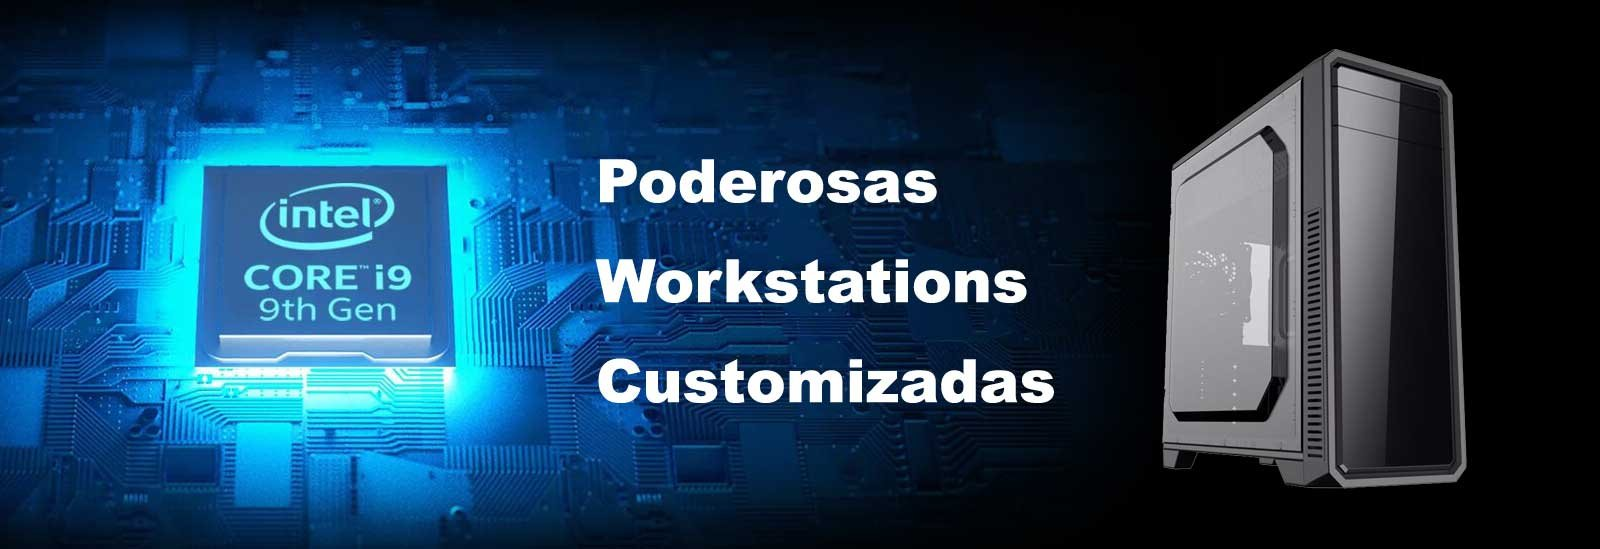 Workstation Poderosas